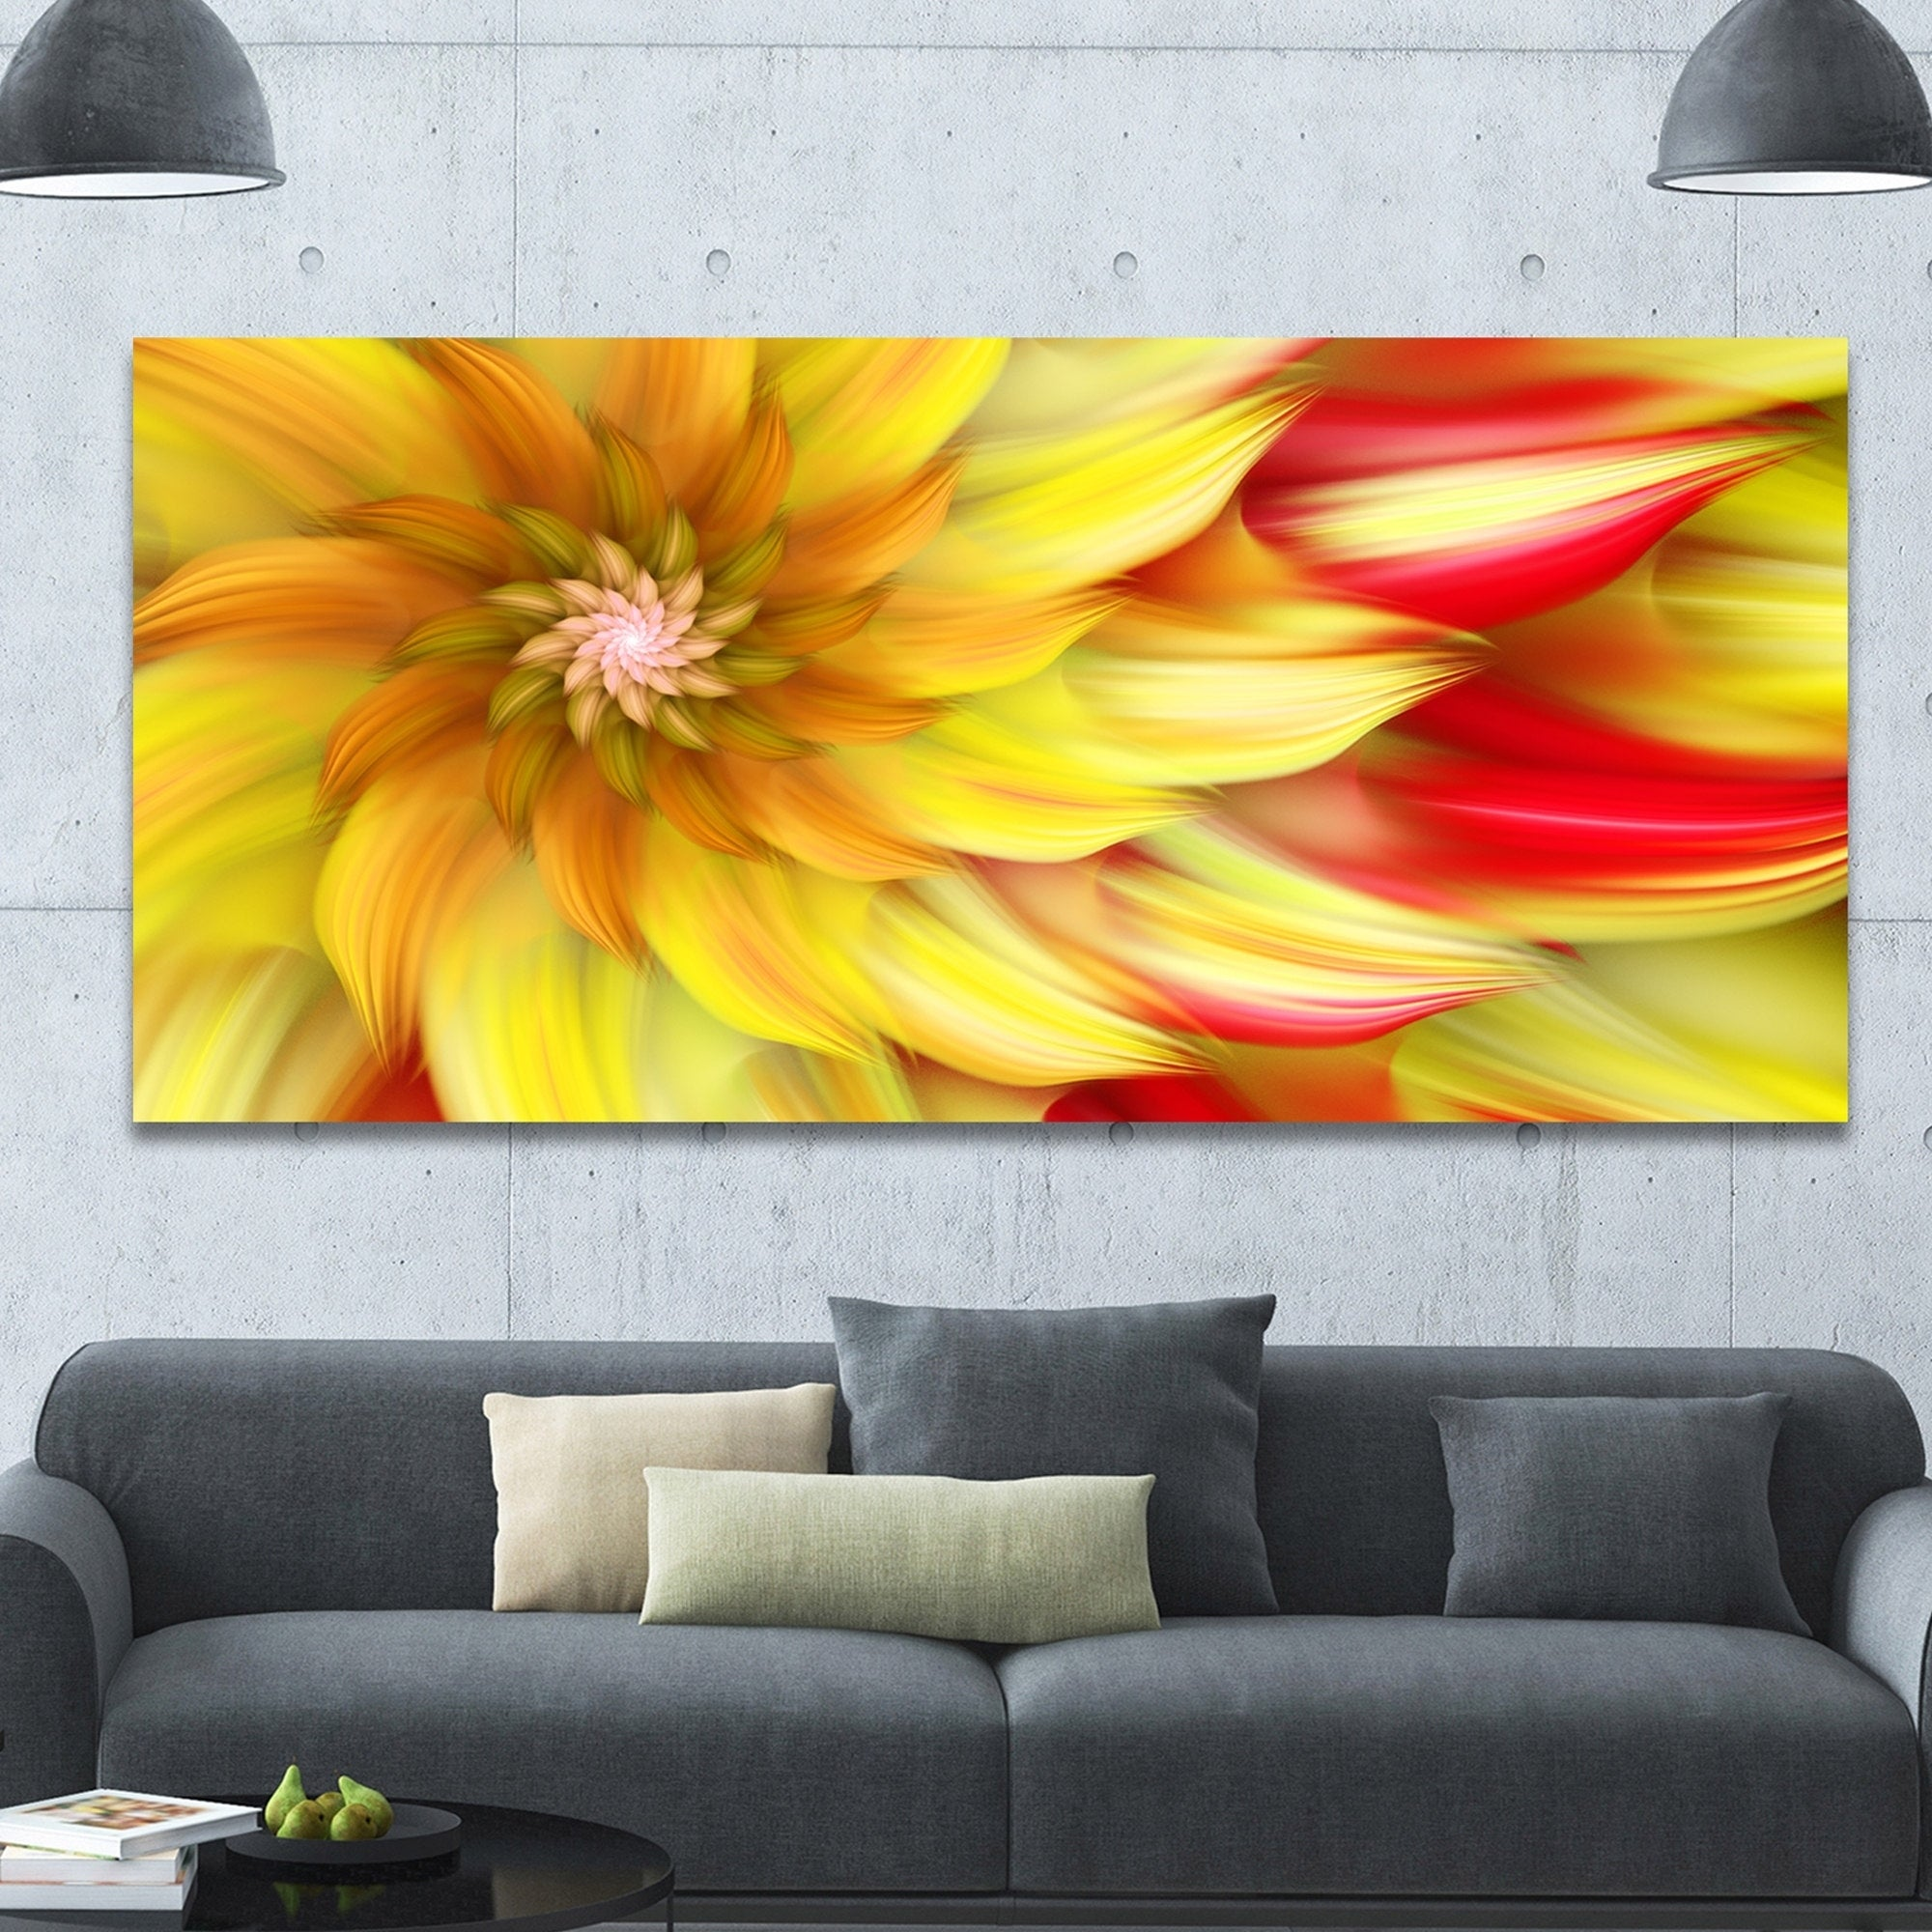 Designart \'Rotating Yellow Red Fractal Flower\' Extra Large Floral ...